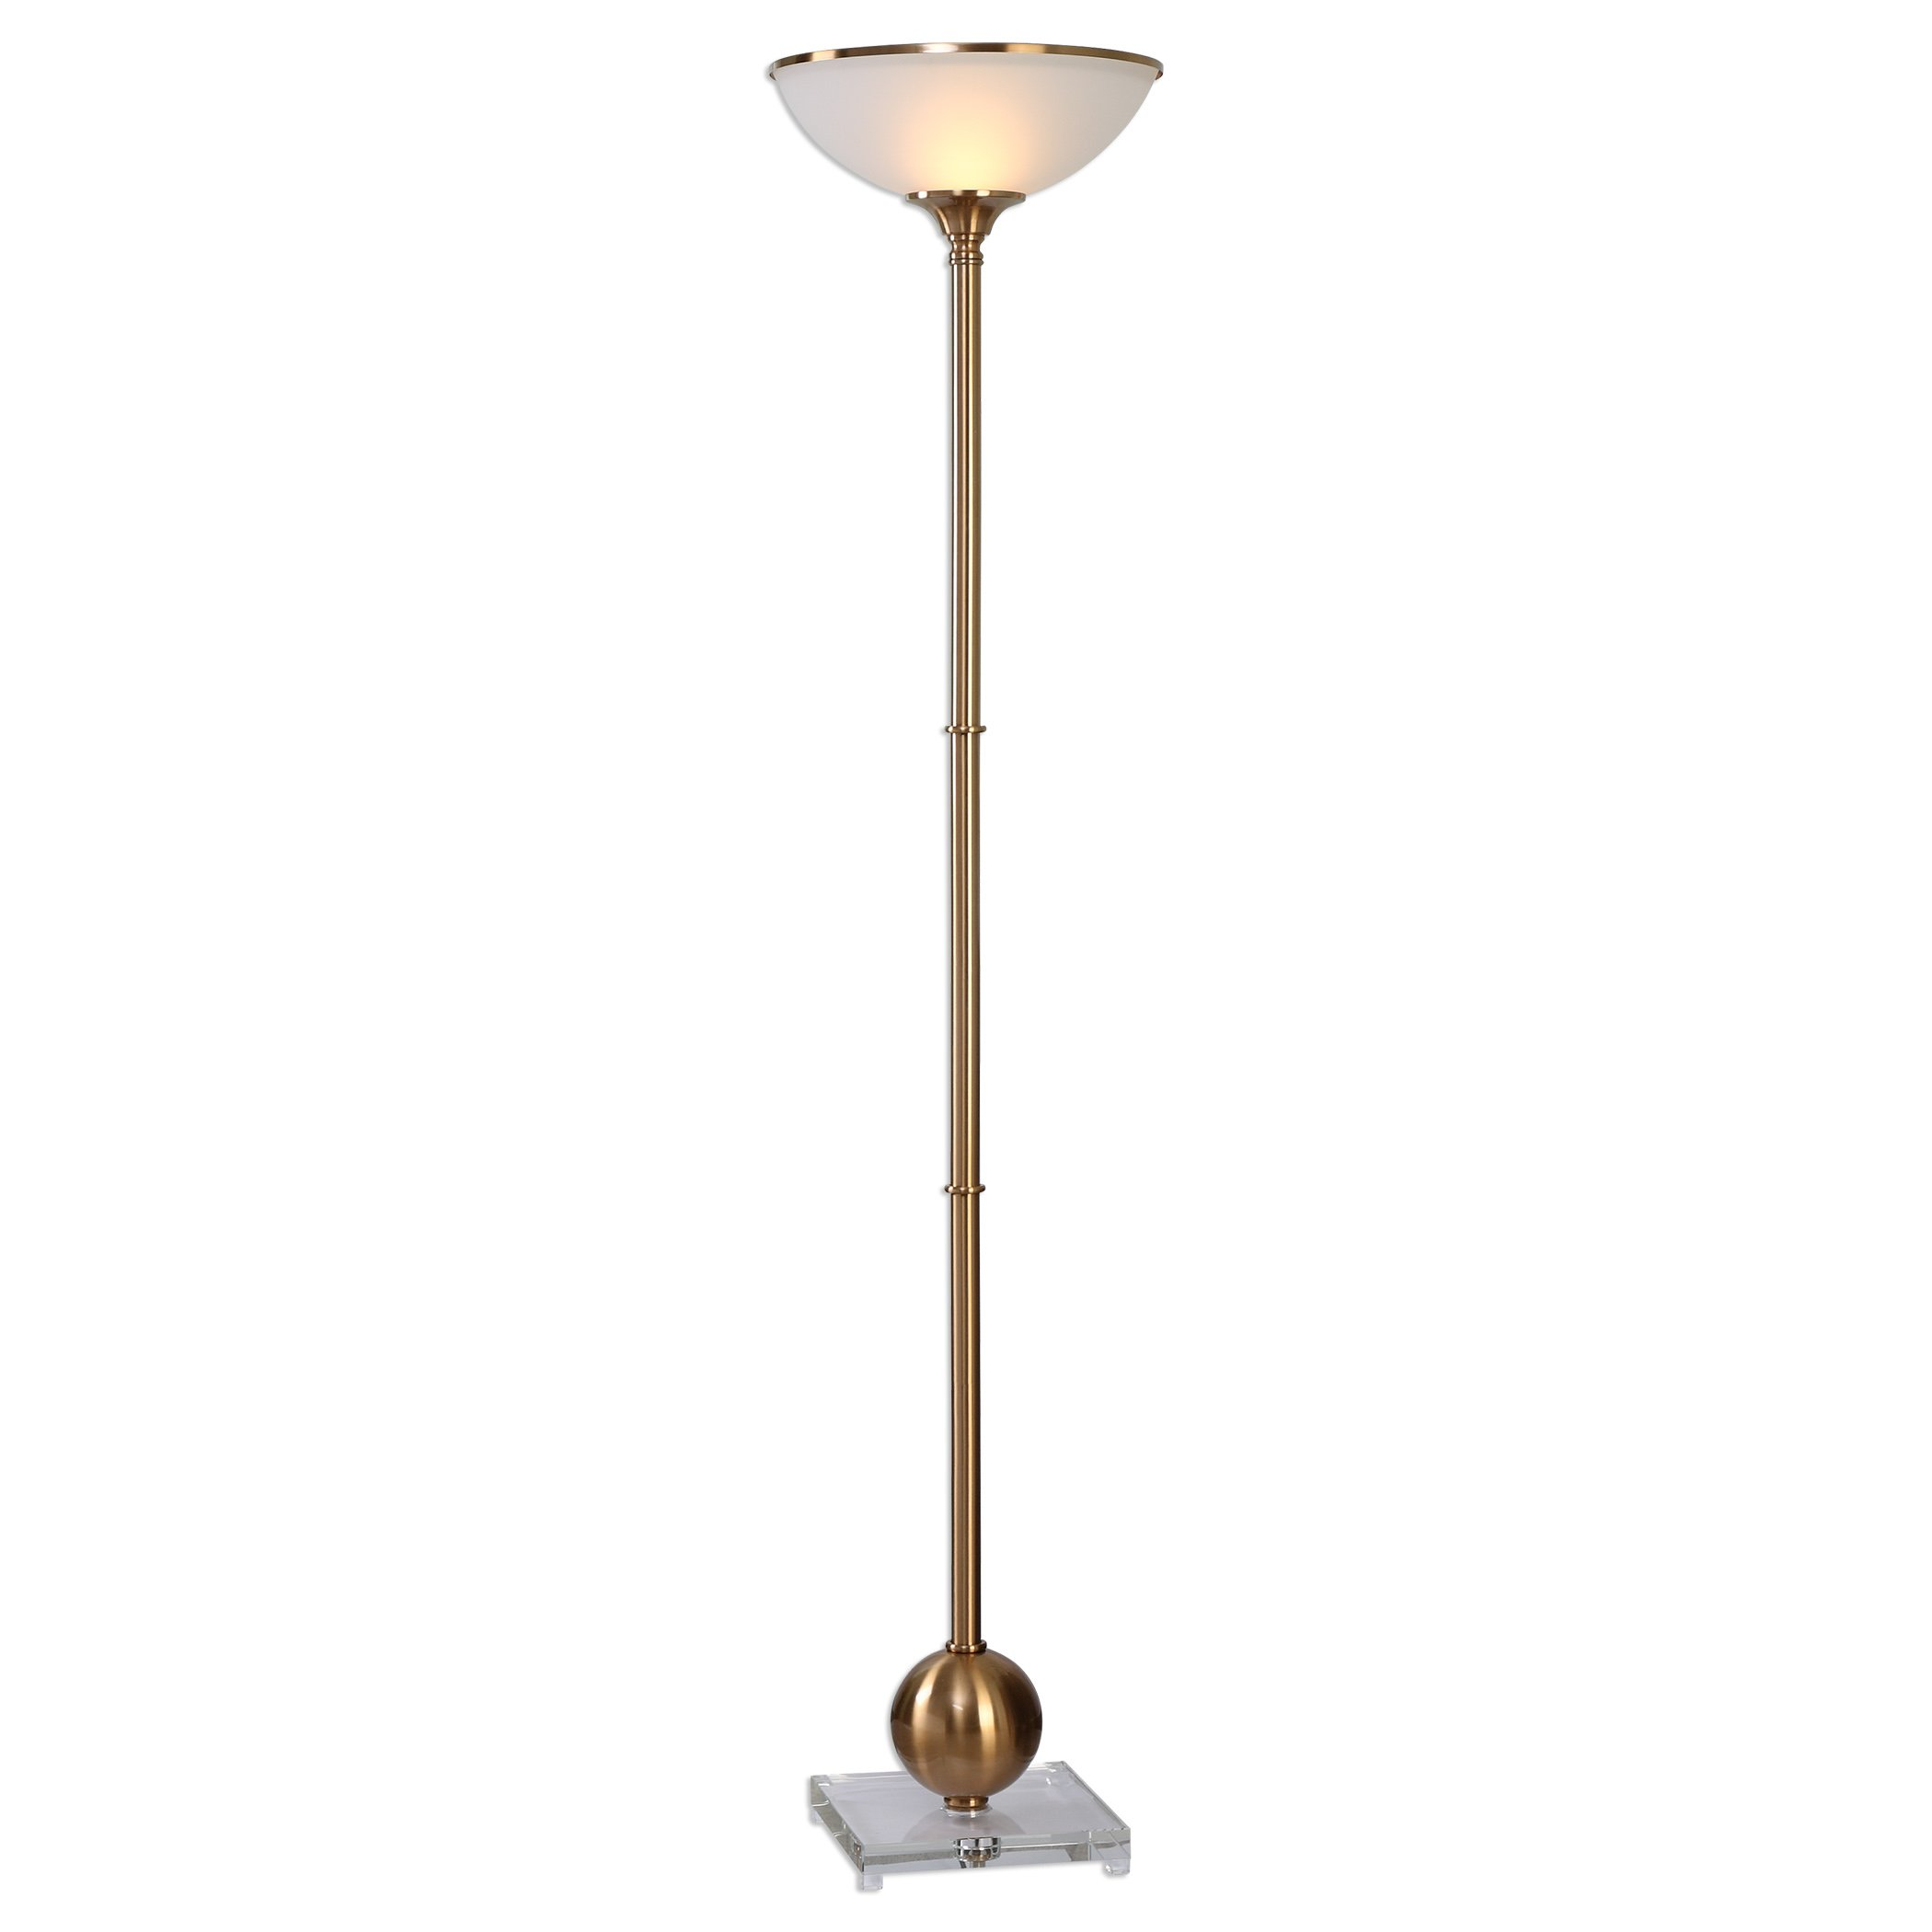 Luxe Brushed Brass Sphere Column Floor Lamp | Frosted Glass Shade Uplight Gold by My Swanky Home